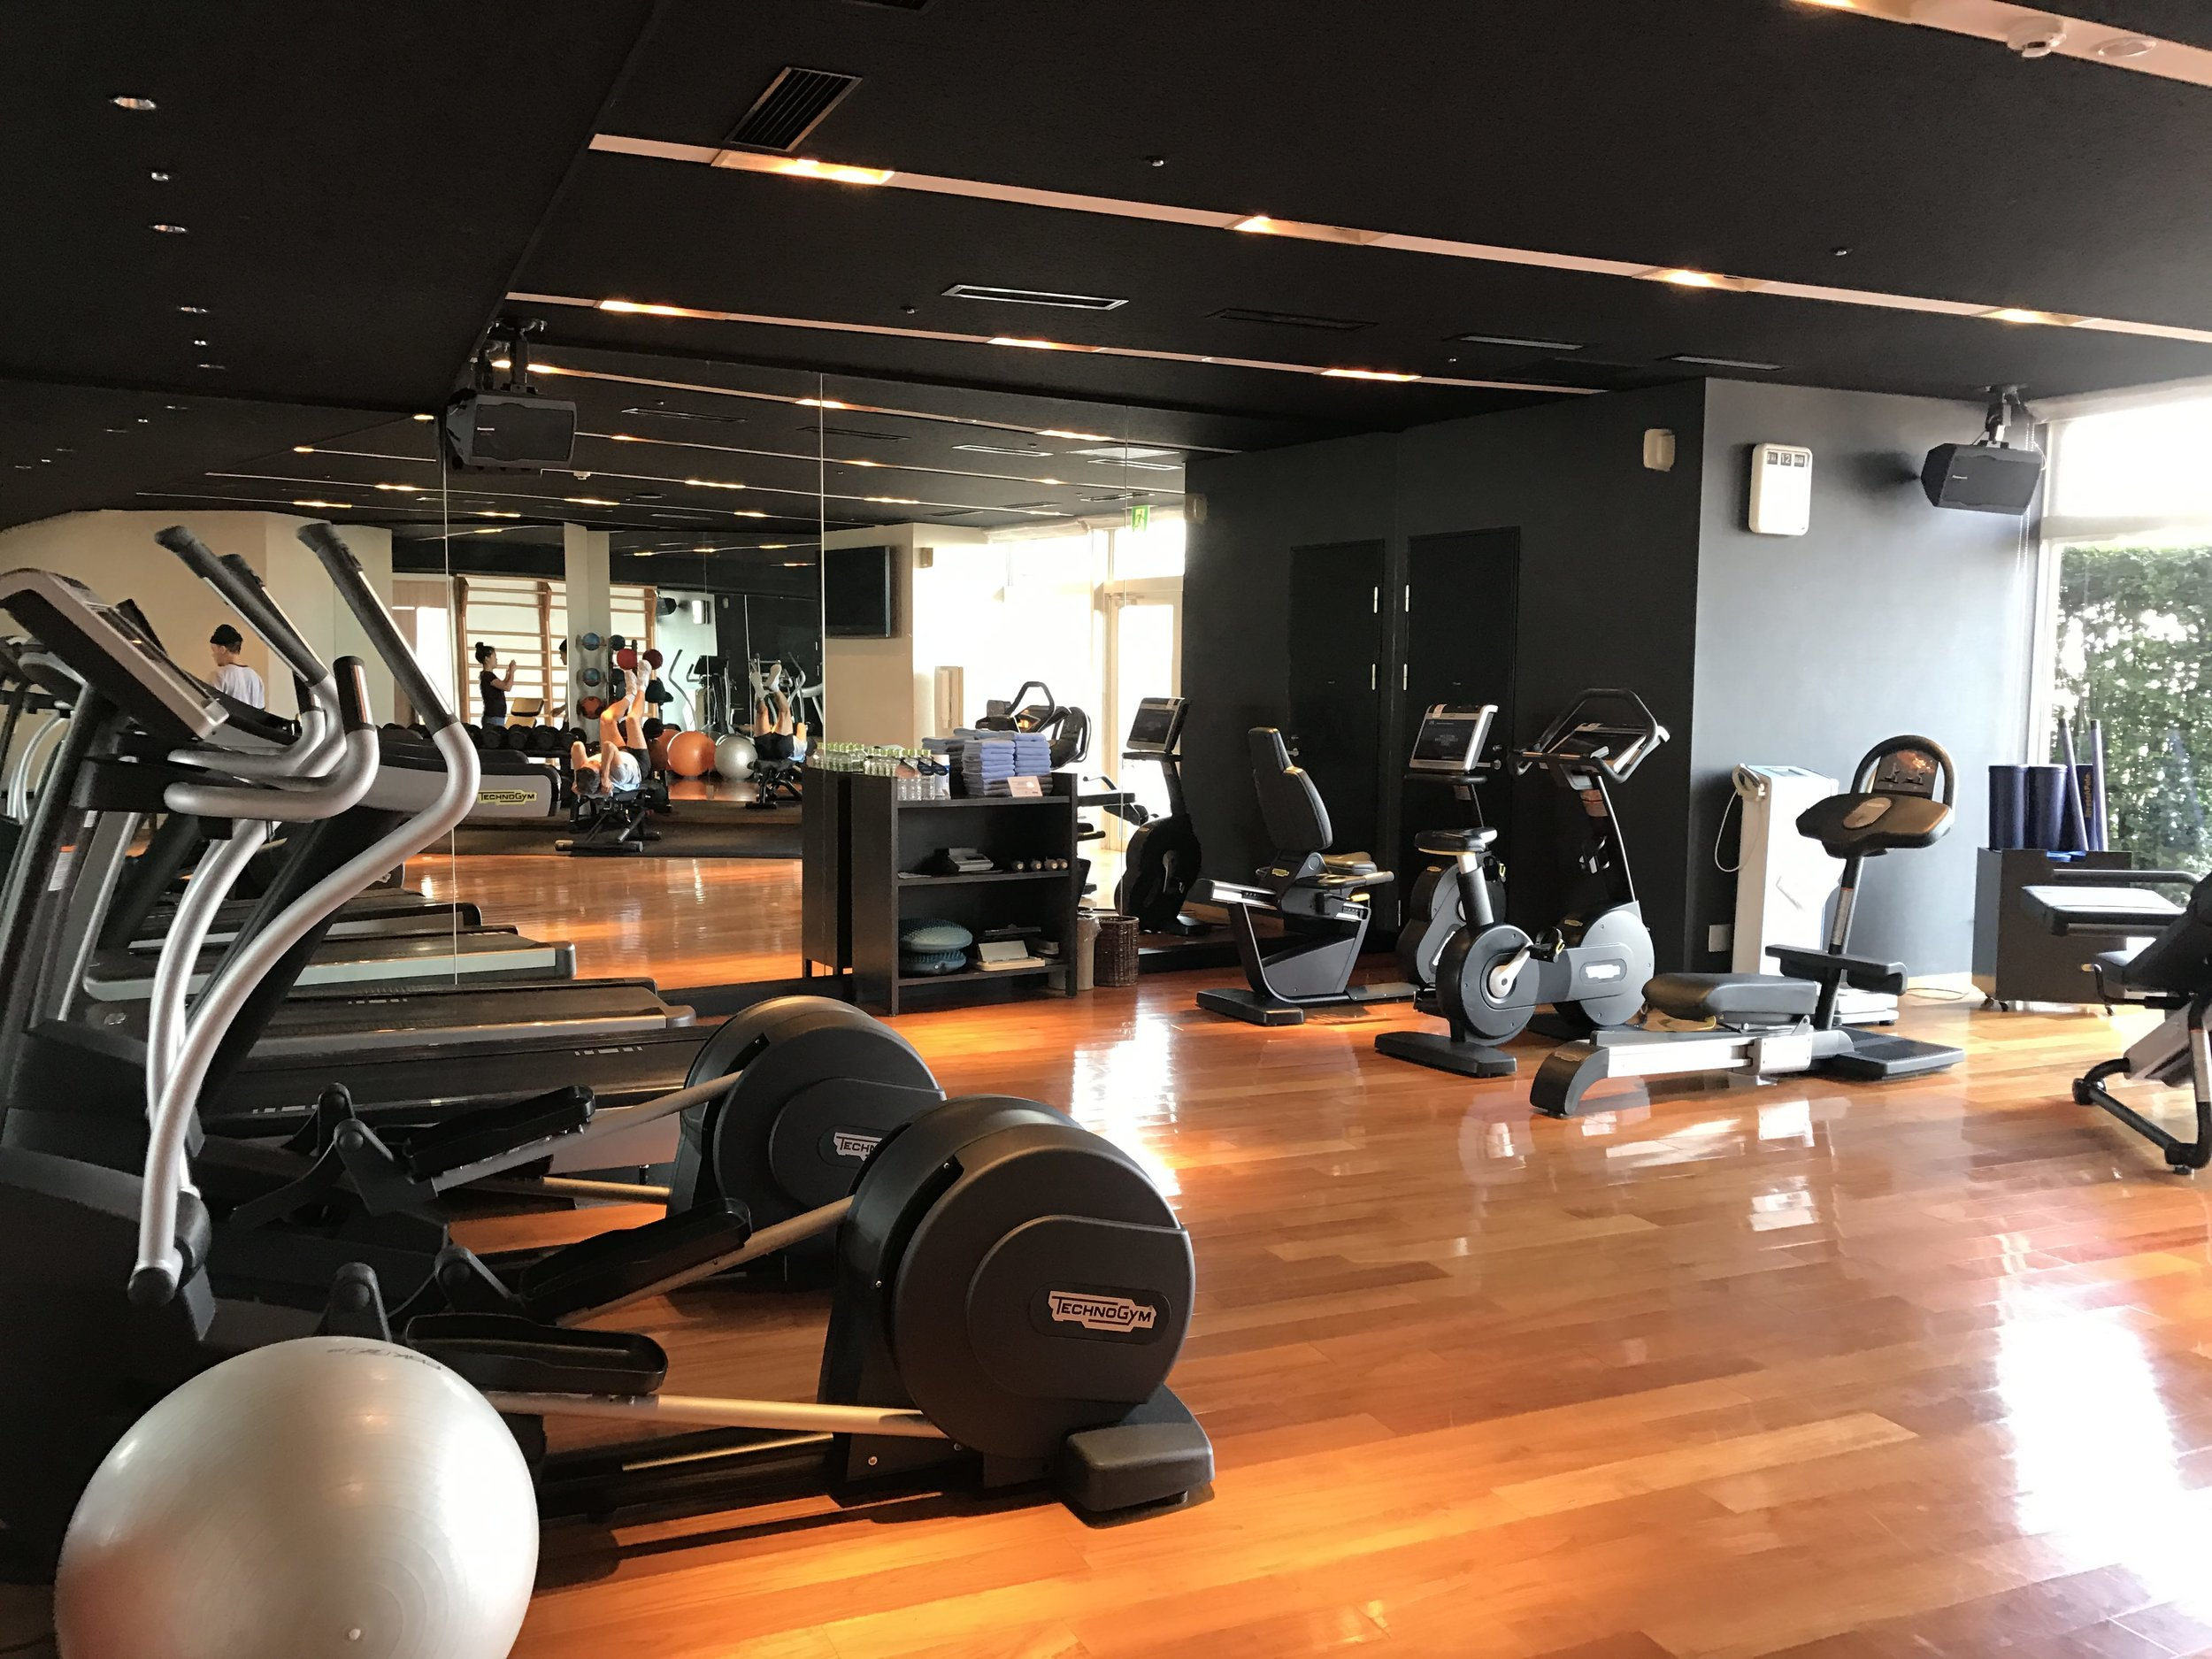 Well equipped gym with up to date machines and everything you need for a great work out.